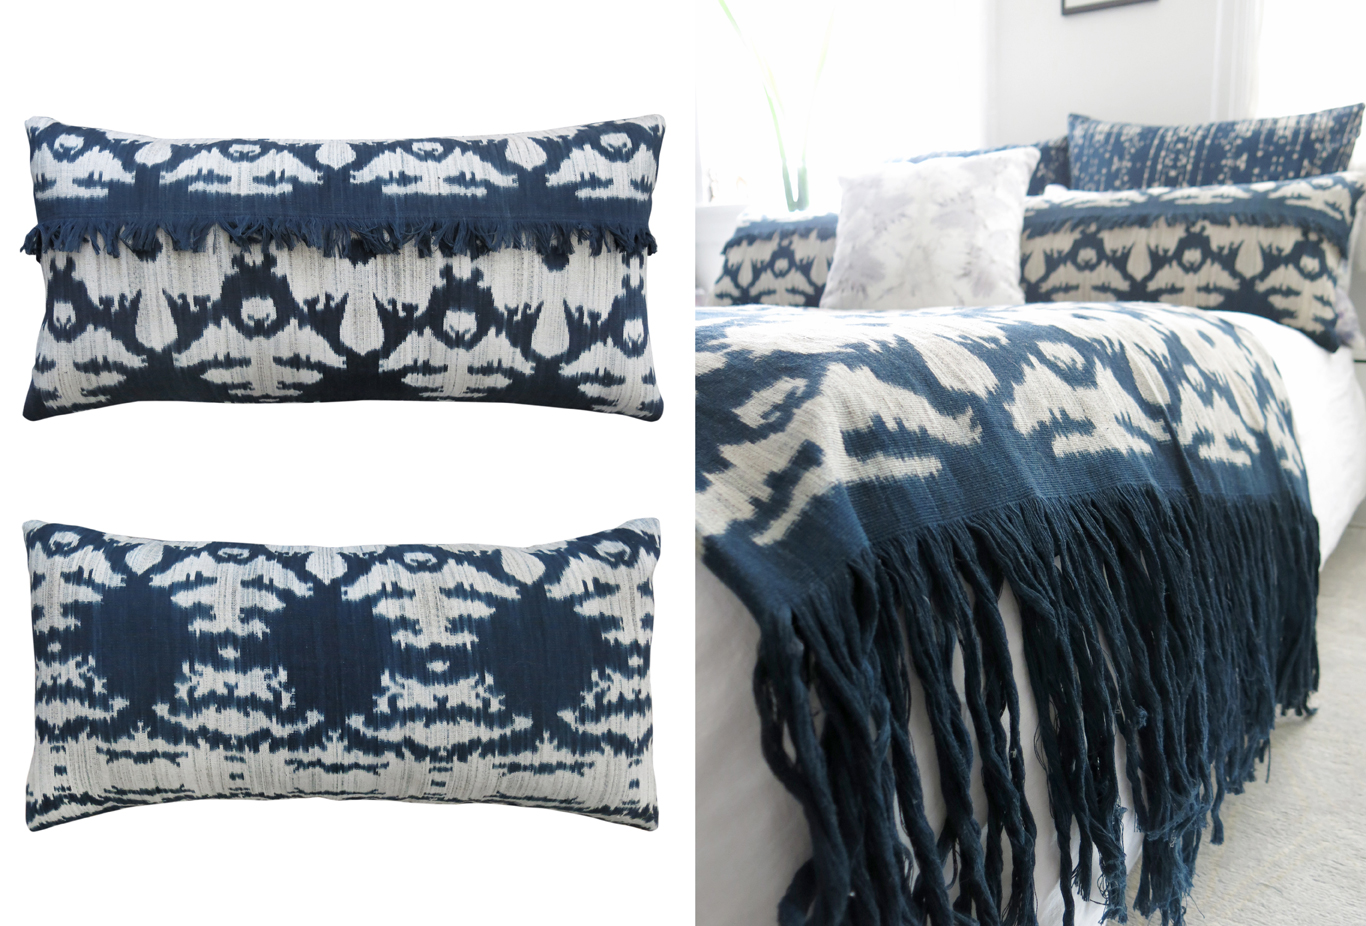 webFULL_pillows_and_bed